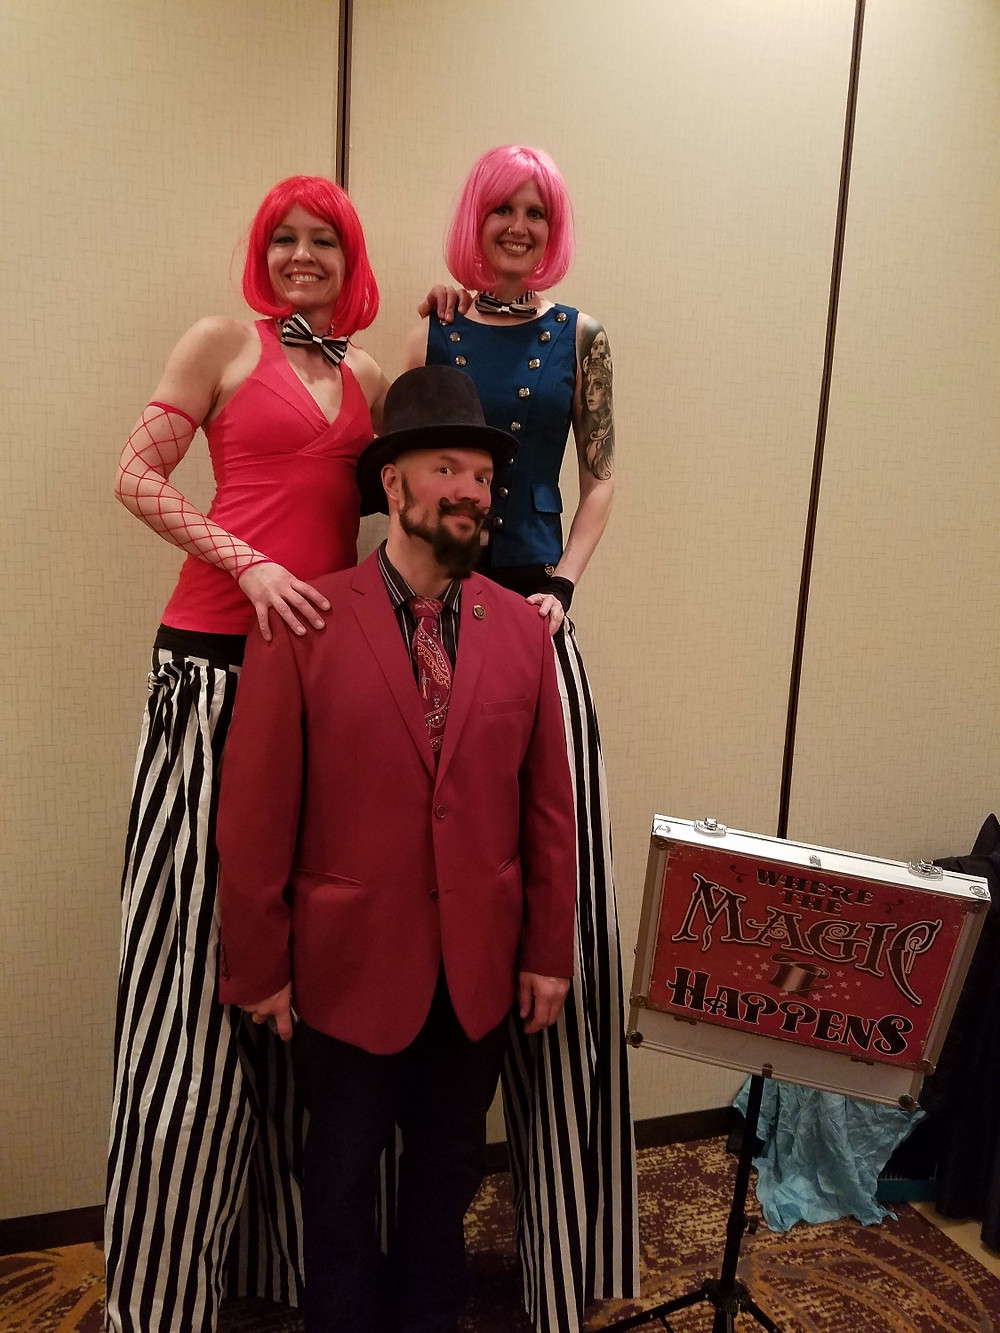 mentalist and circus performers!